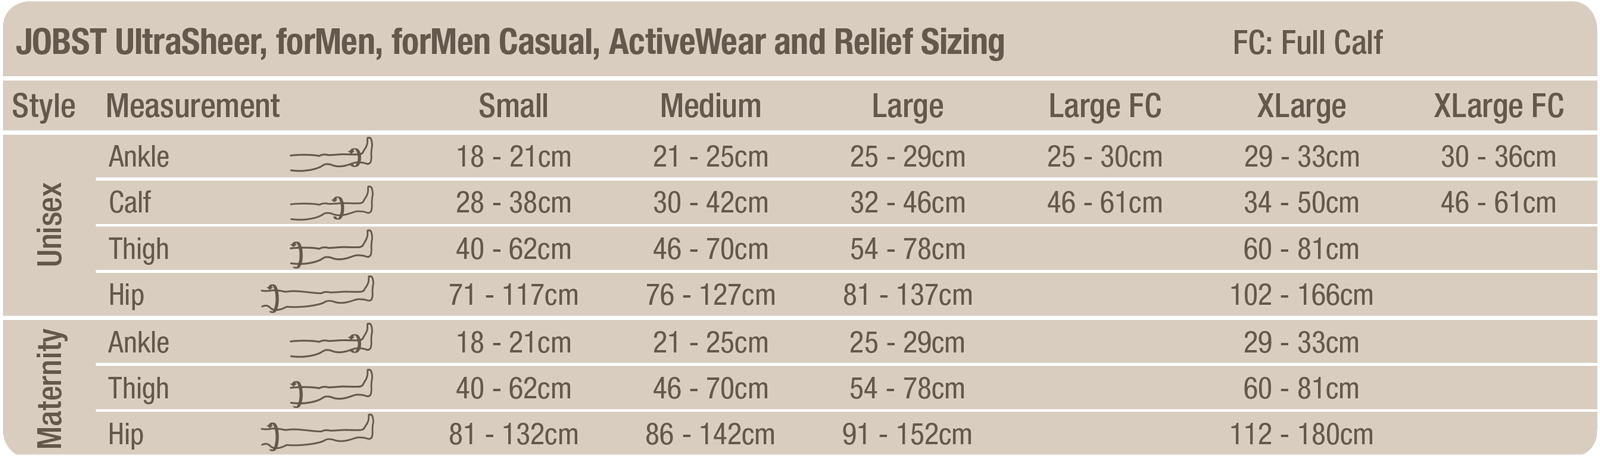 size-chart-jobst-selection-guide-new.png